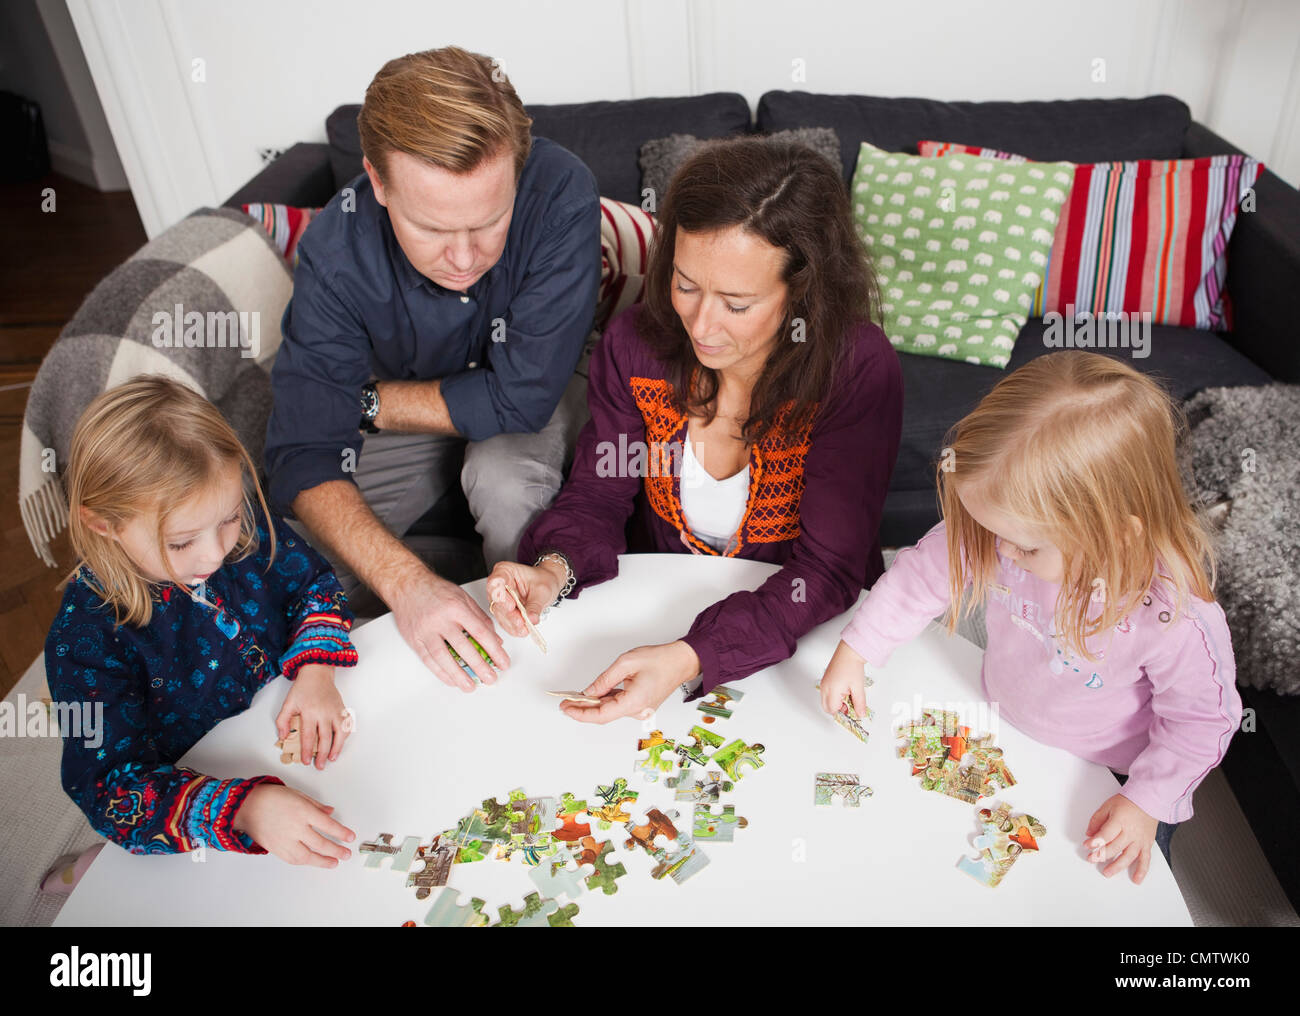 Parents and children (2-4) playing puzzle game - Stock Image